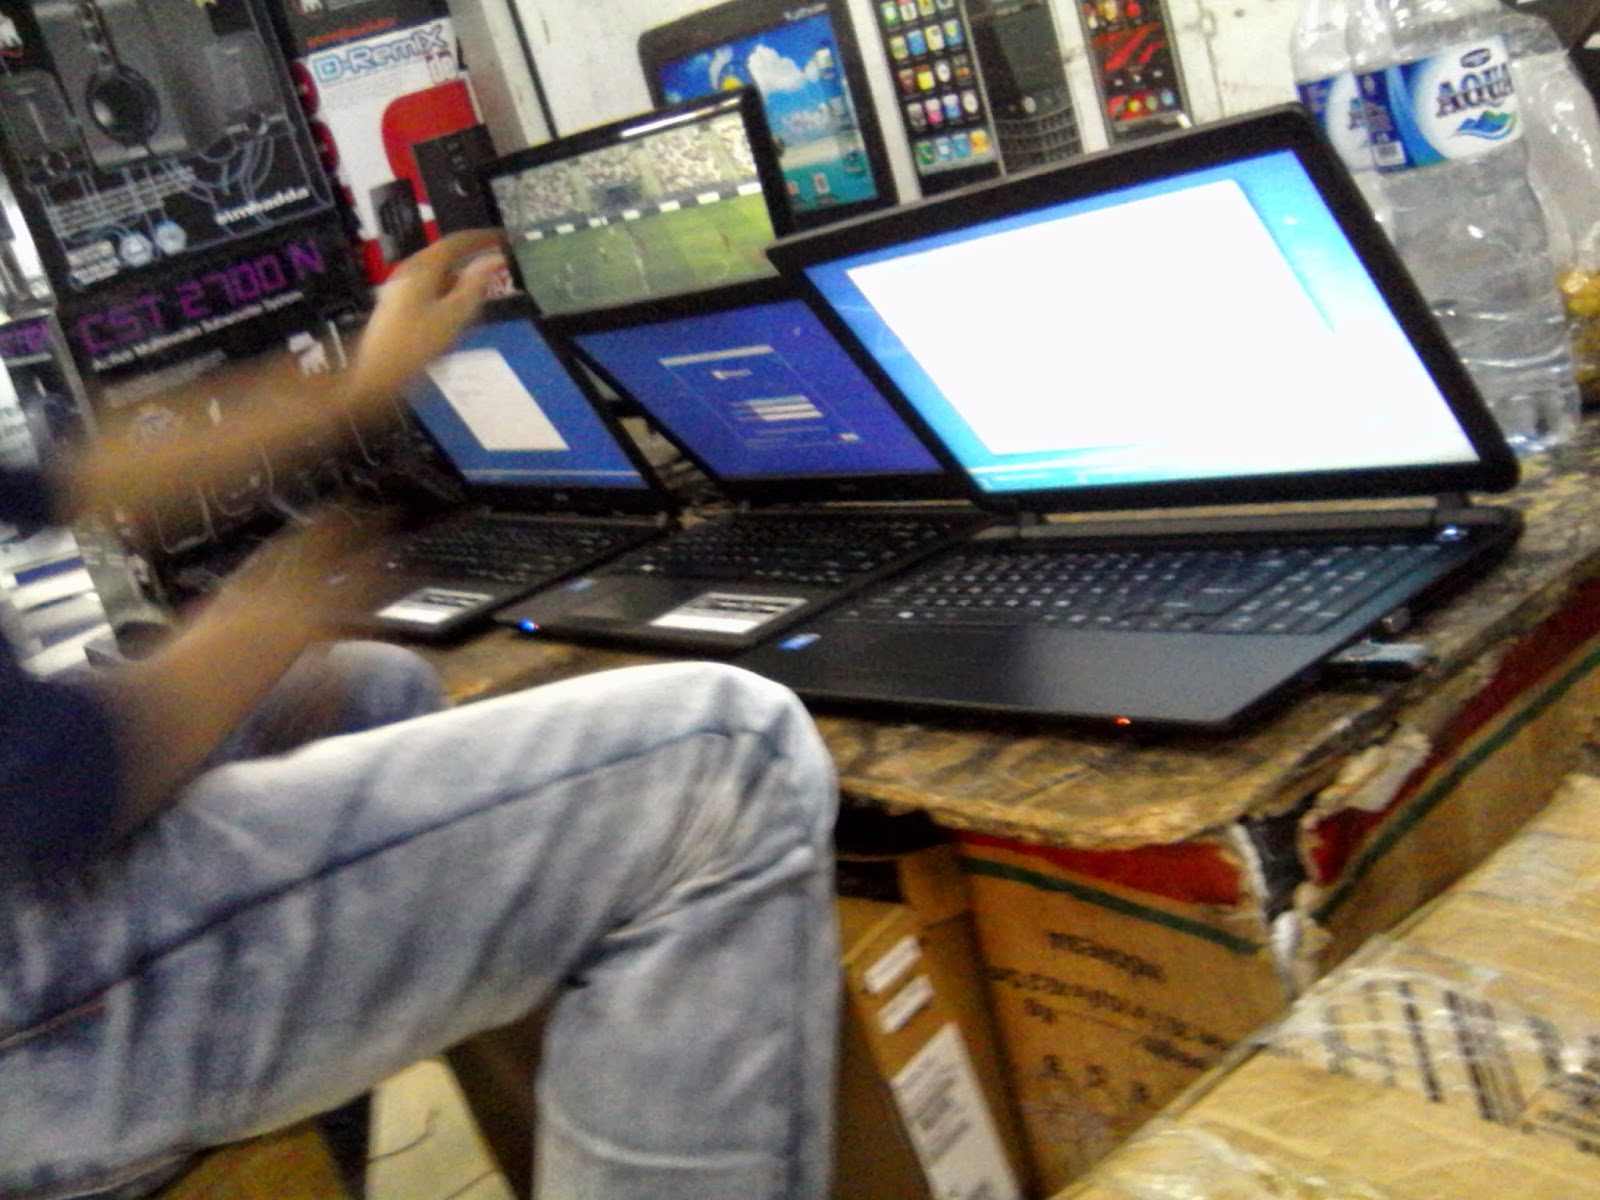 proses instalasi windows dan software wilcom